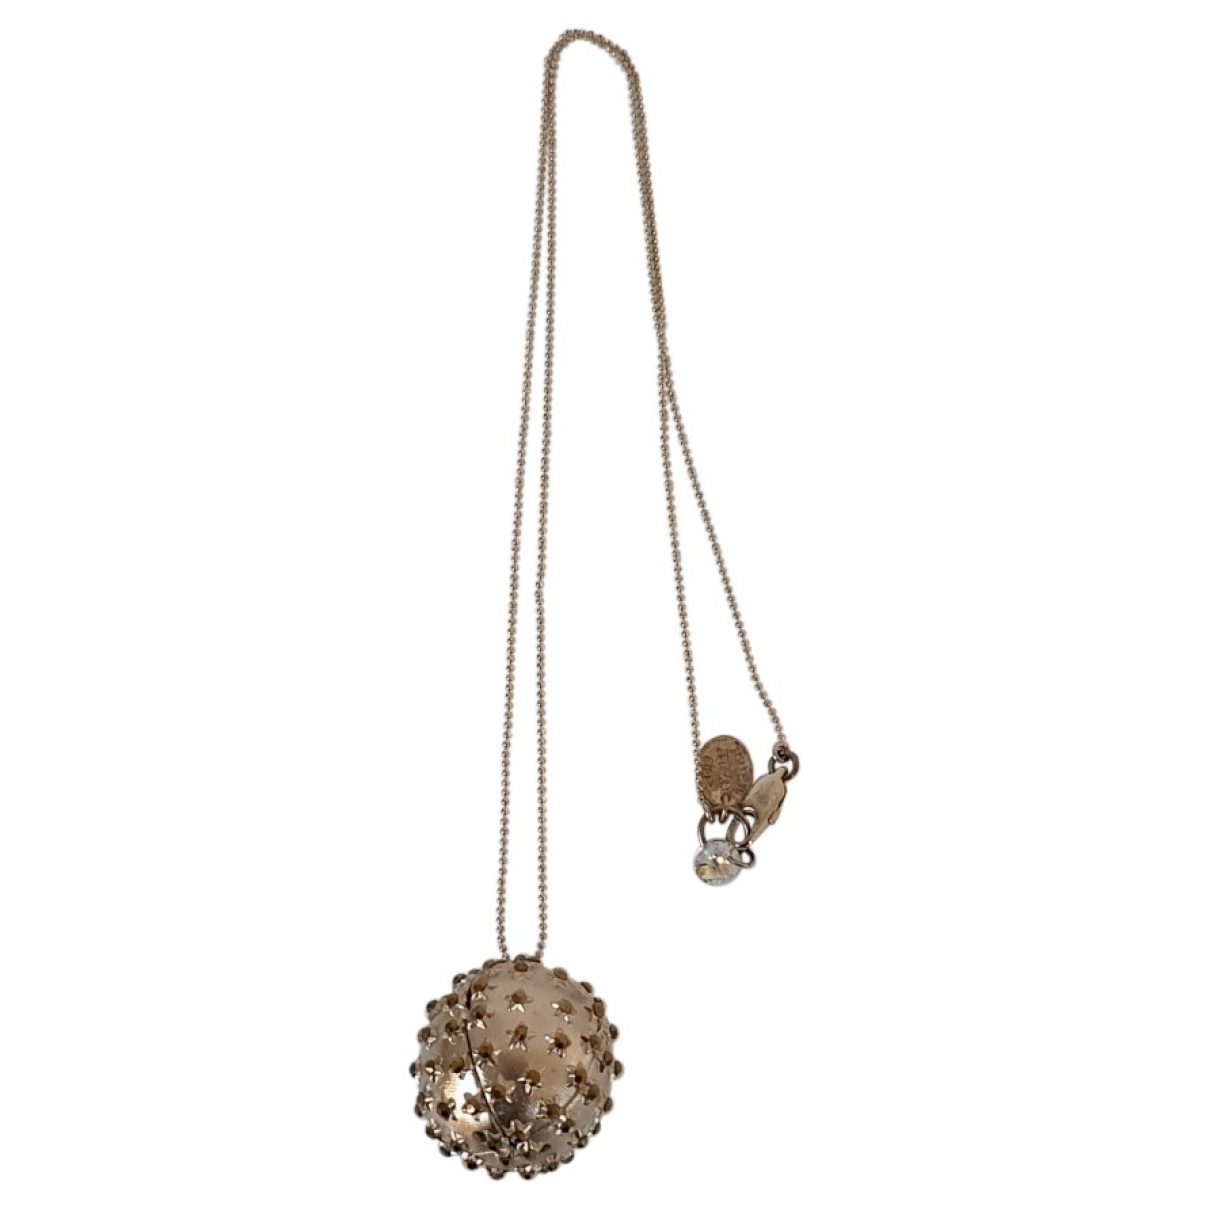 Servane Gaxotte \N Gold Metal necklace for Women \N